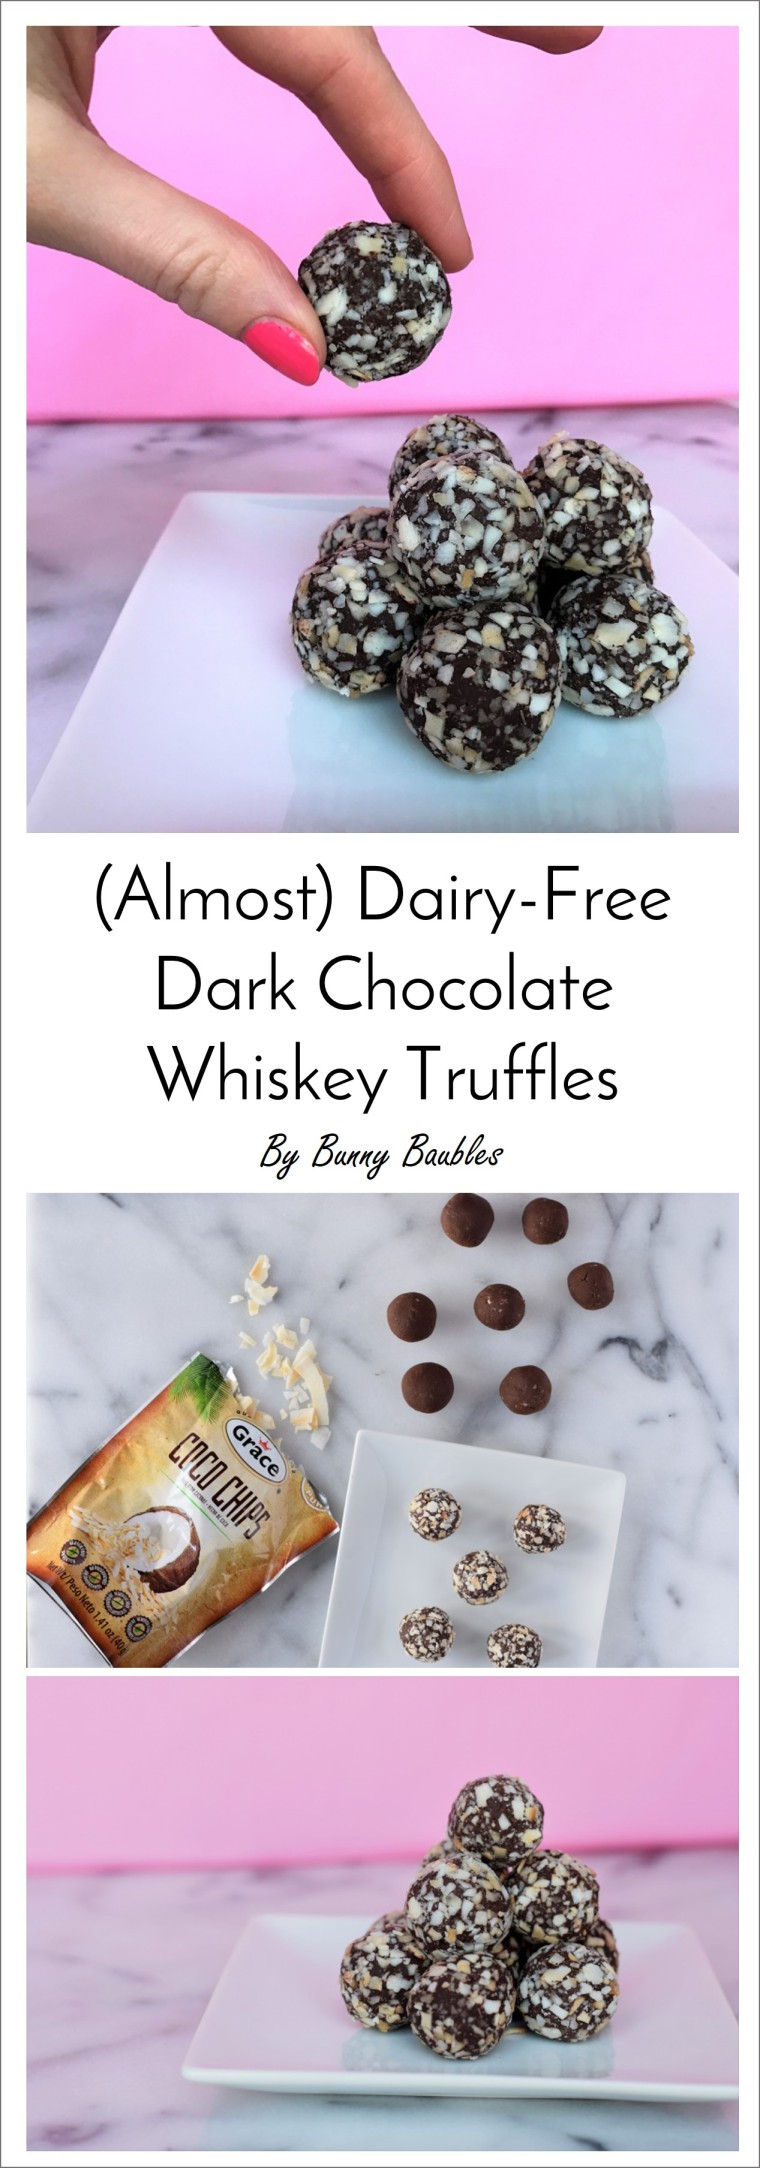 almost-dairy-free-dark-chocolate-and-whiskey-truffles-by-bunny-baubles-pin